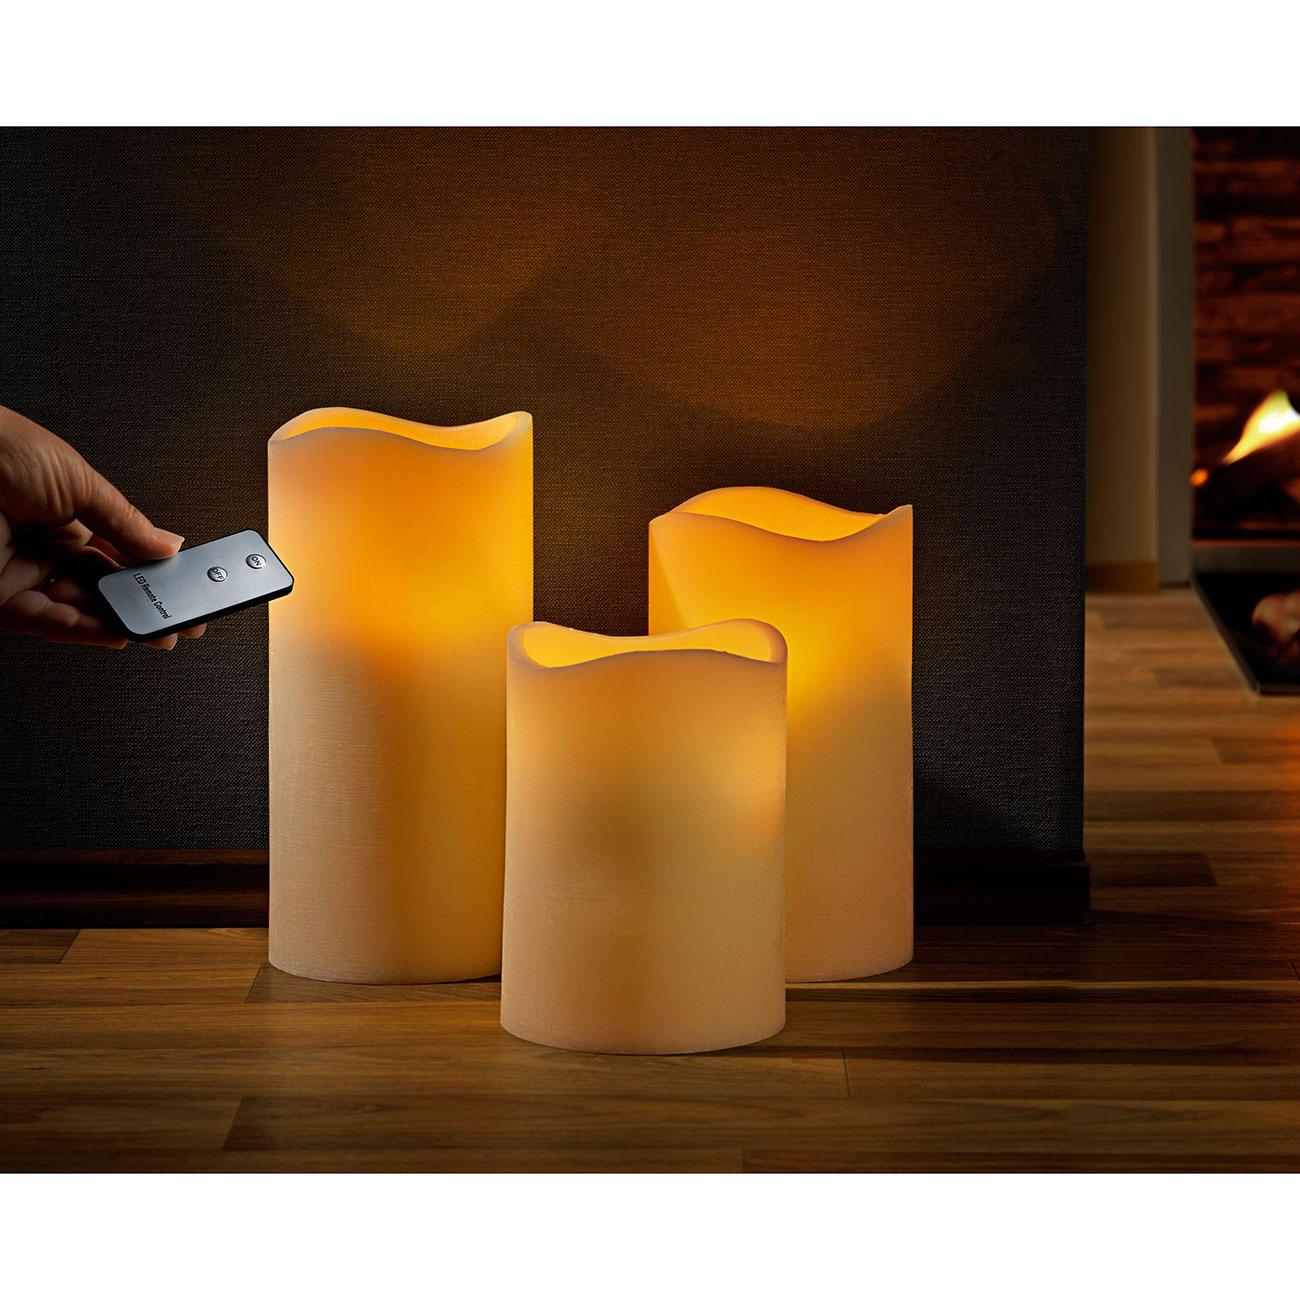 bougies led en cire v ritable lot de 3 avec t l commande. Black Bedroom Furniture Sets. Home Design Ideas